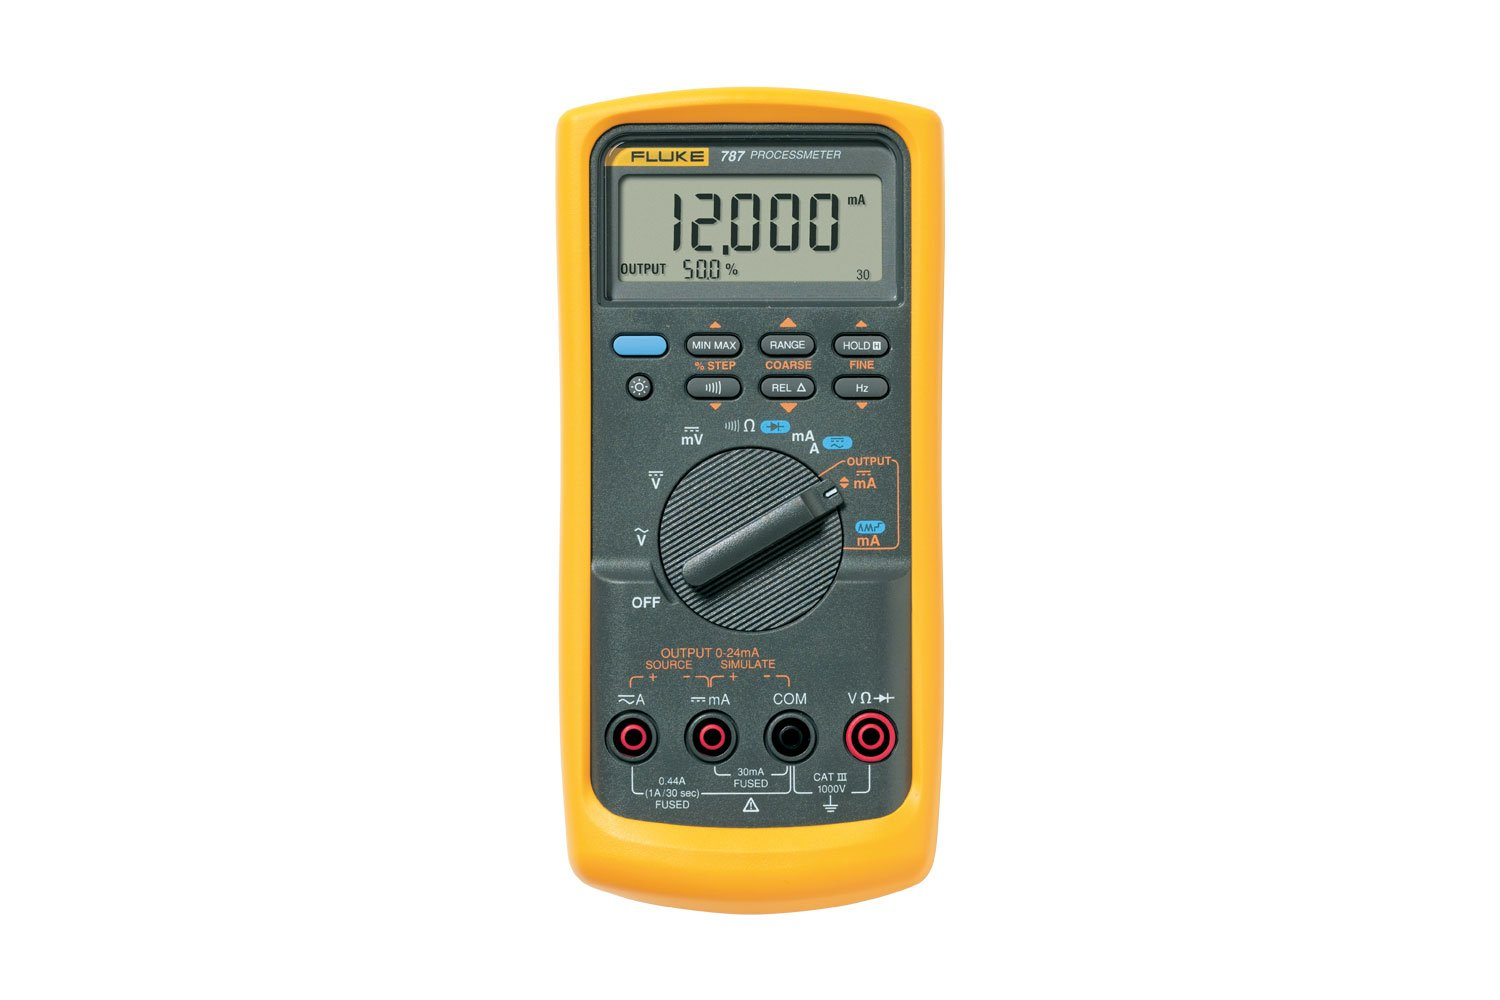 Fluke 787 Digital Multimeter Dmm Loop Calibrator Combo 20 Ma Current Measuring Circuits Basics I Industrial